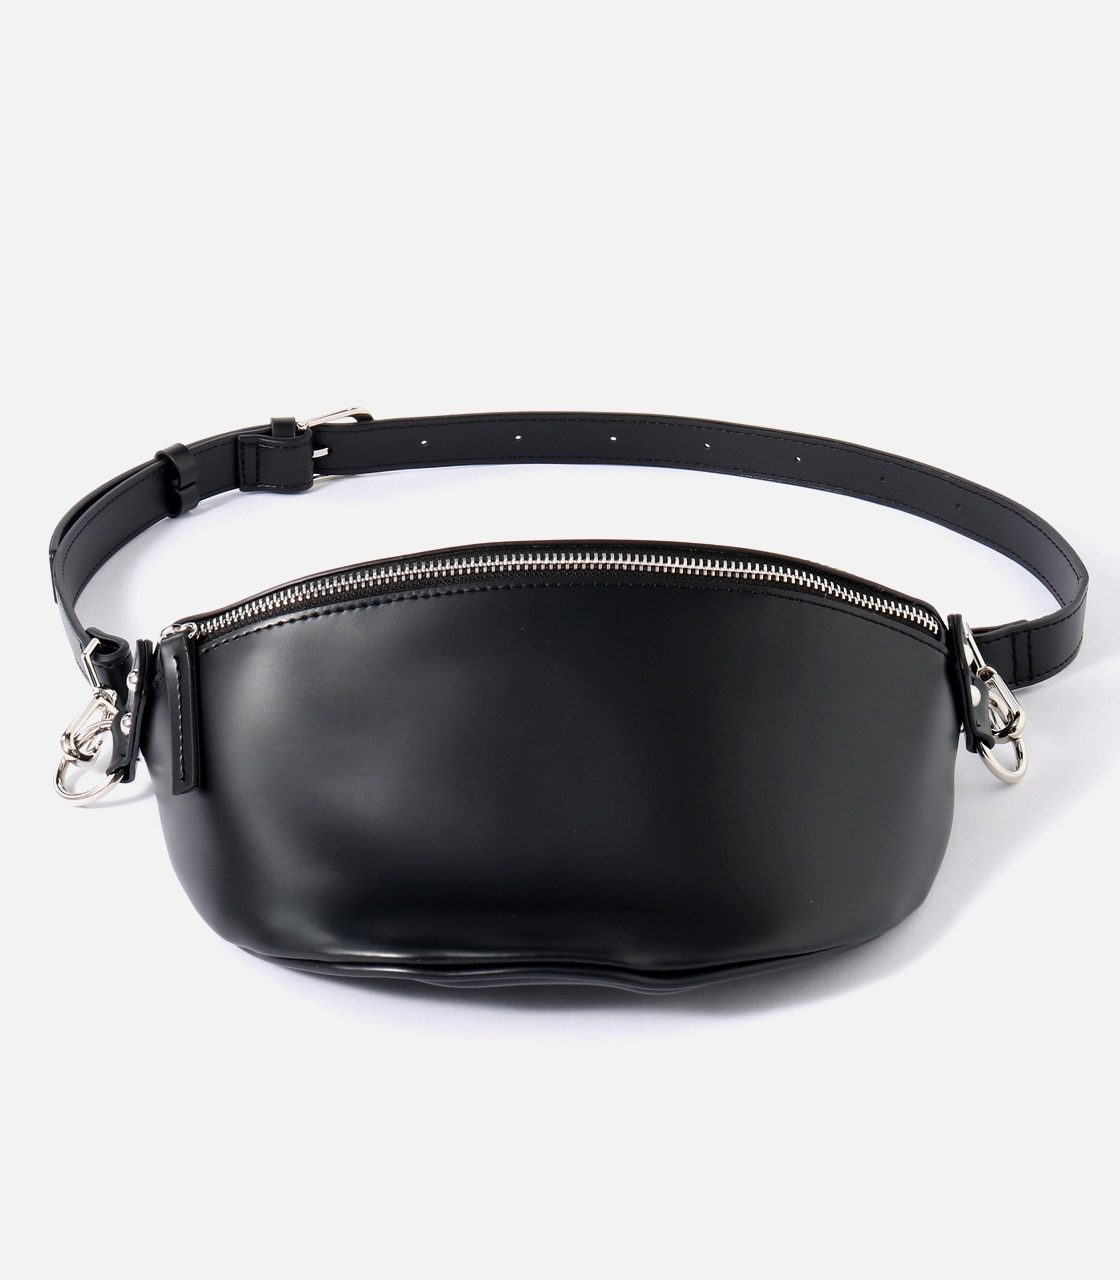 【AZUL BY MOUSSY】FAKE LEATHER WAISTBAG 詳細画像 BLK 1